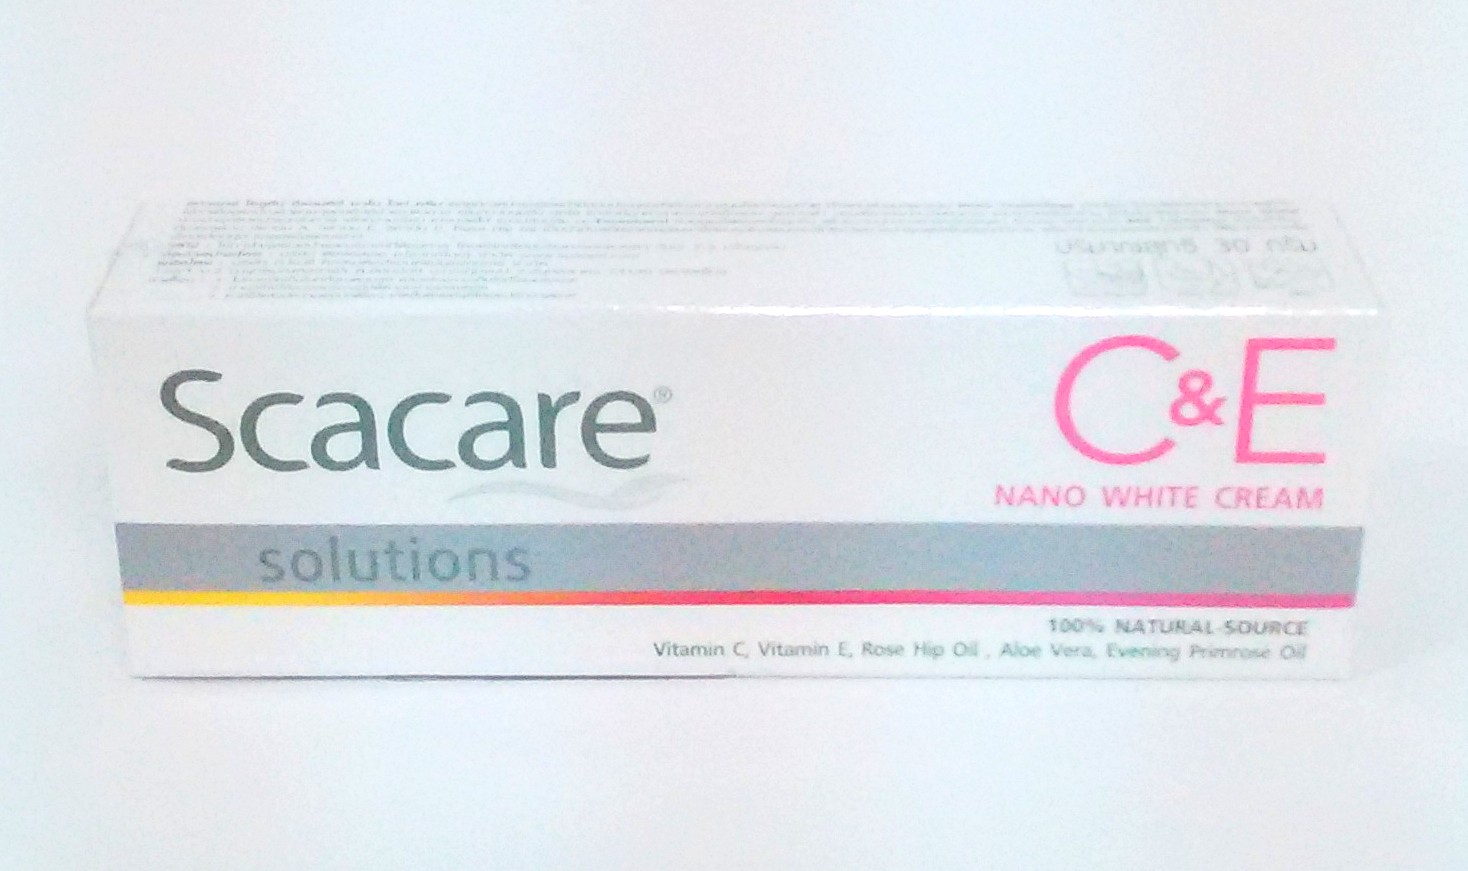 Scacare C&E NANO WHITE CREAM 100%NATURAL-SOUECE 4個セット